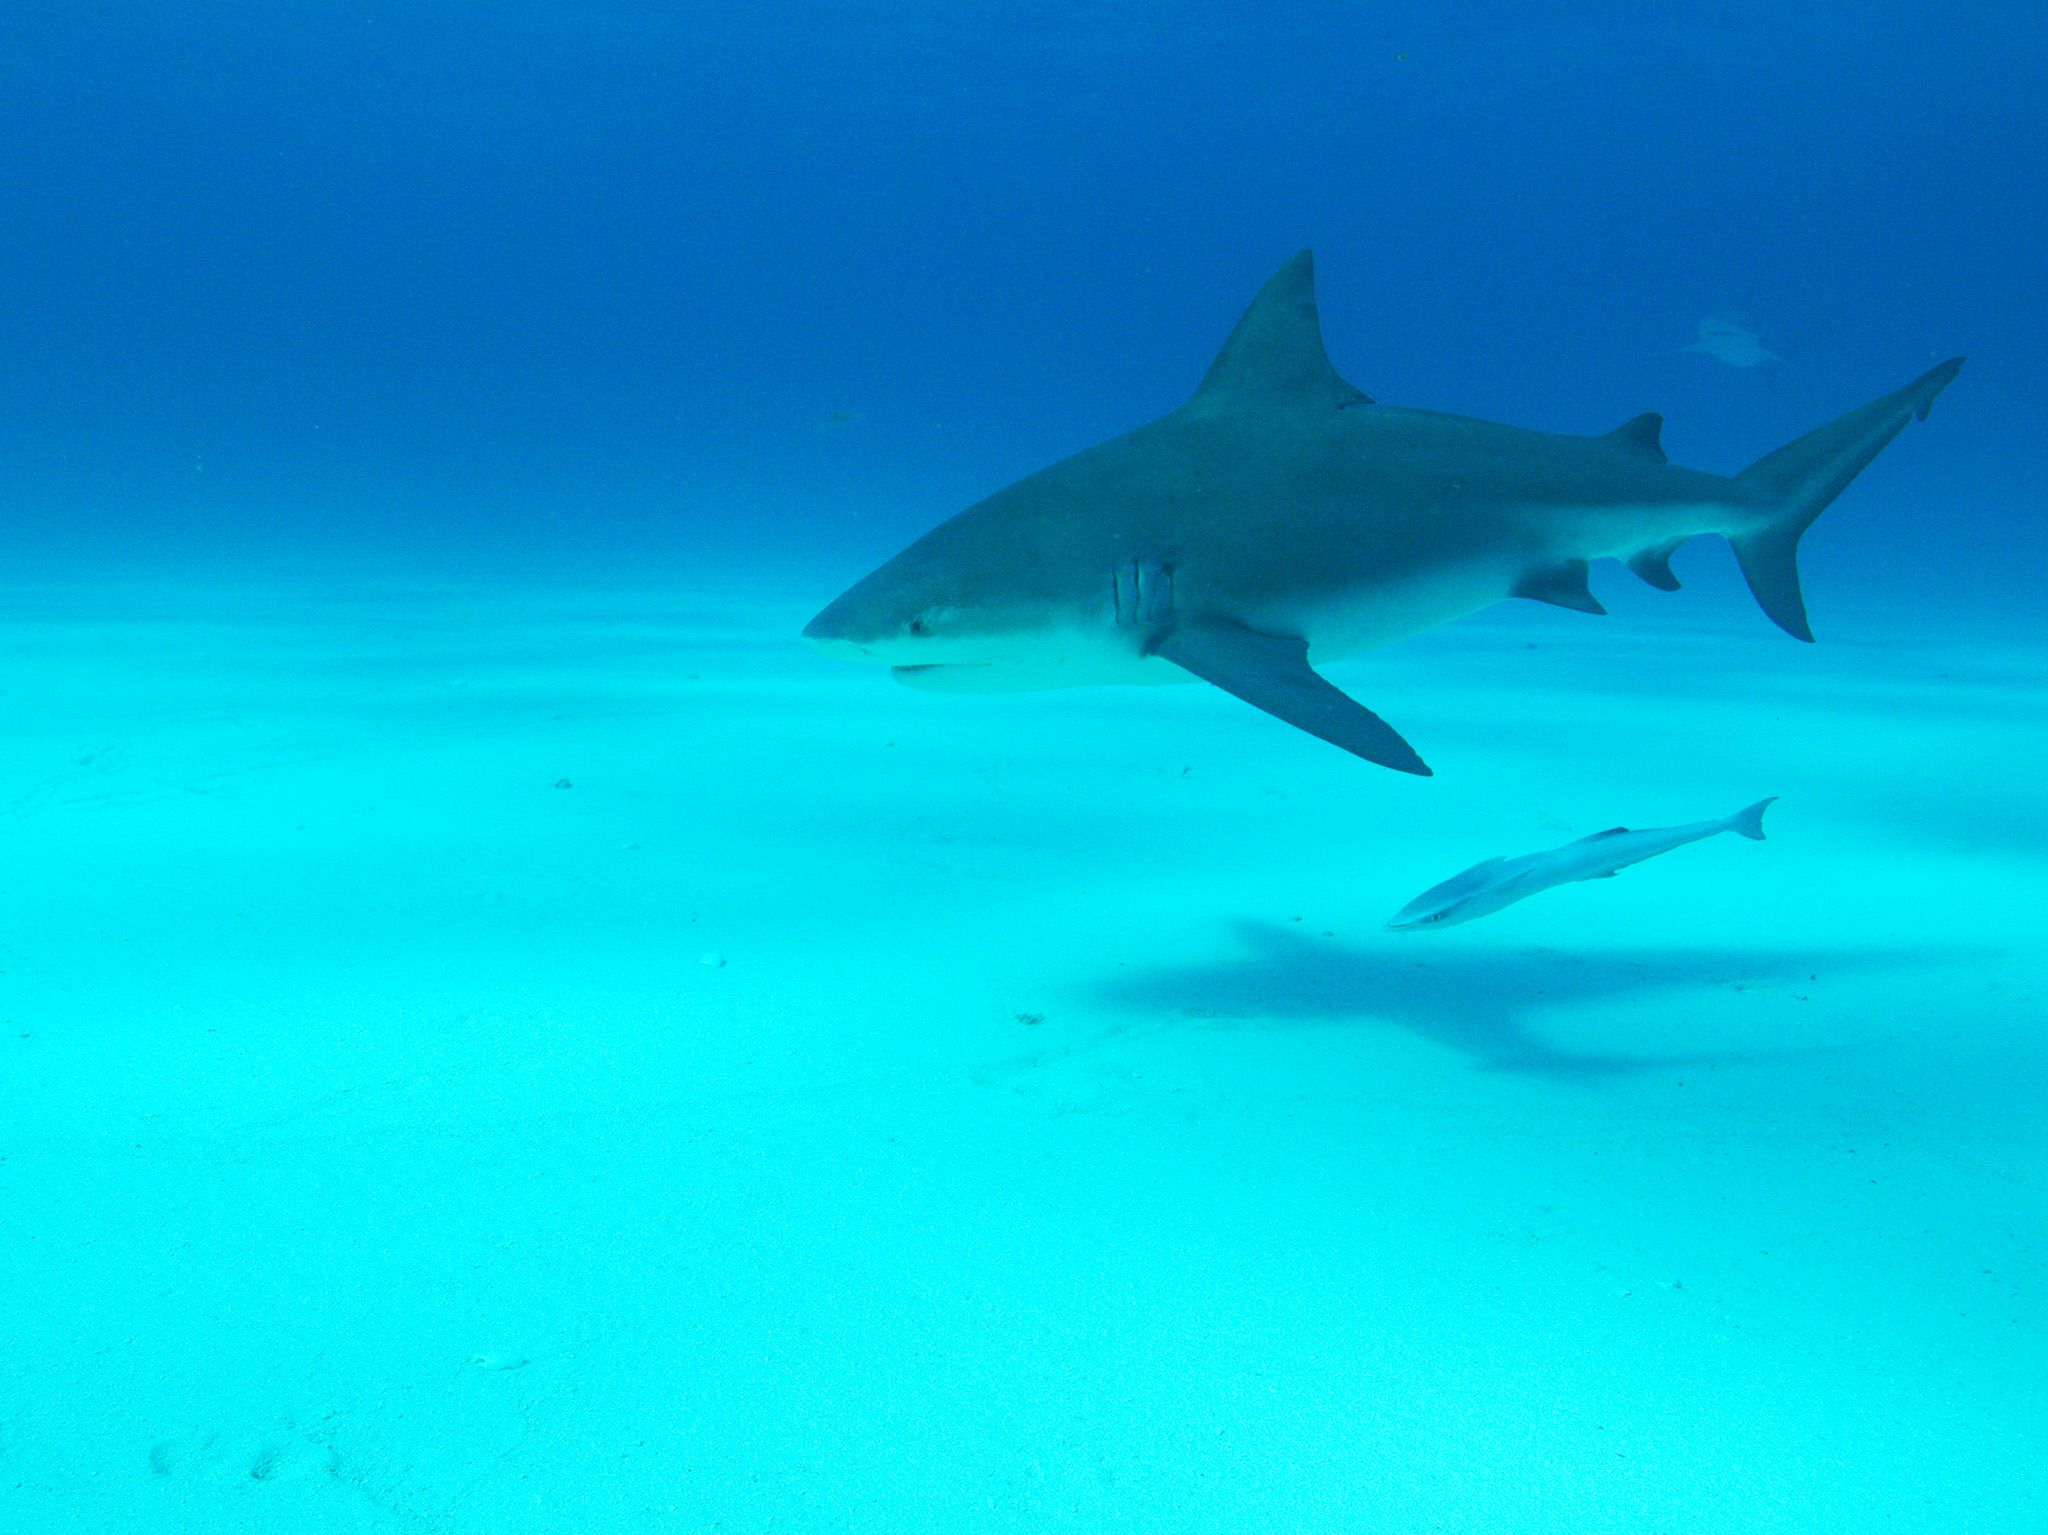 Bull shark swimming near the camera.  This image is from Forecast Shark Attack. [Photo of the day - July 2019]